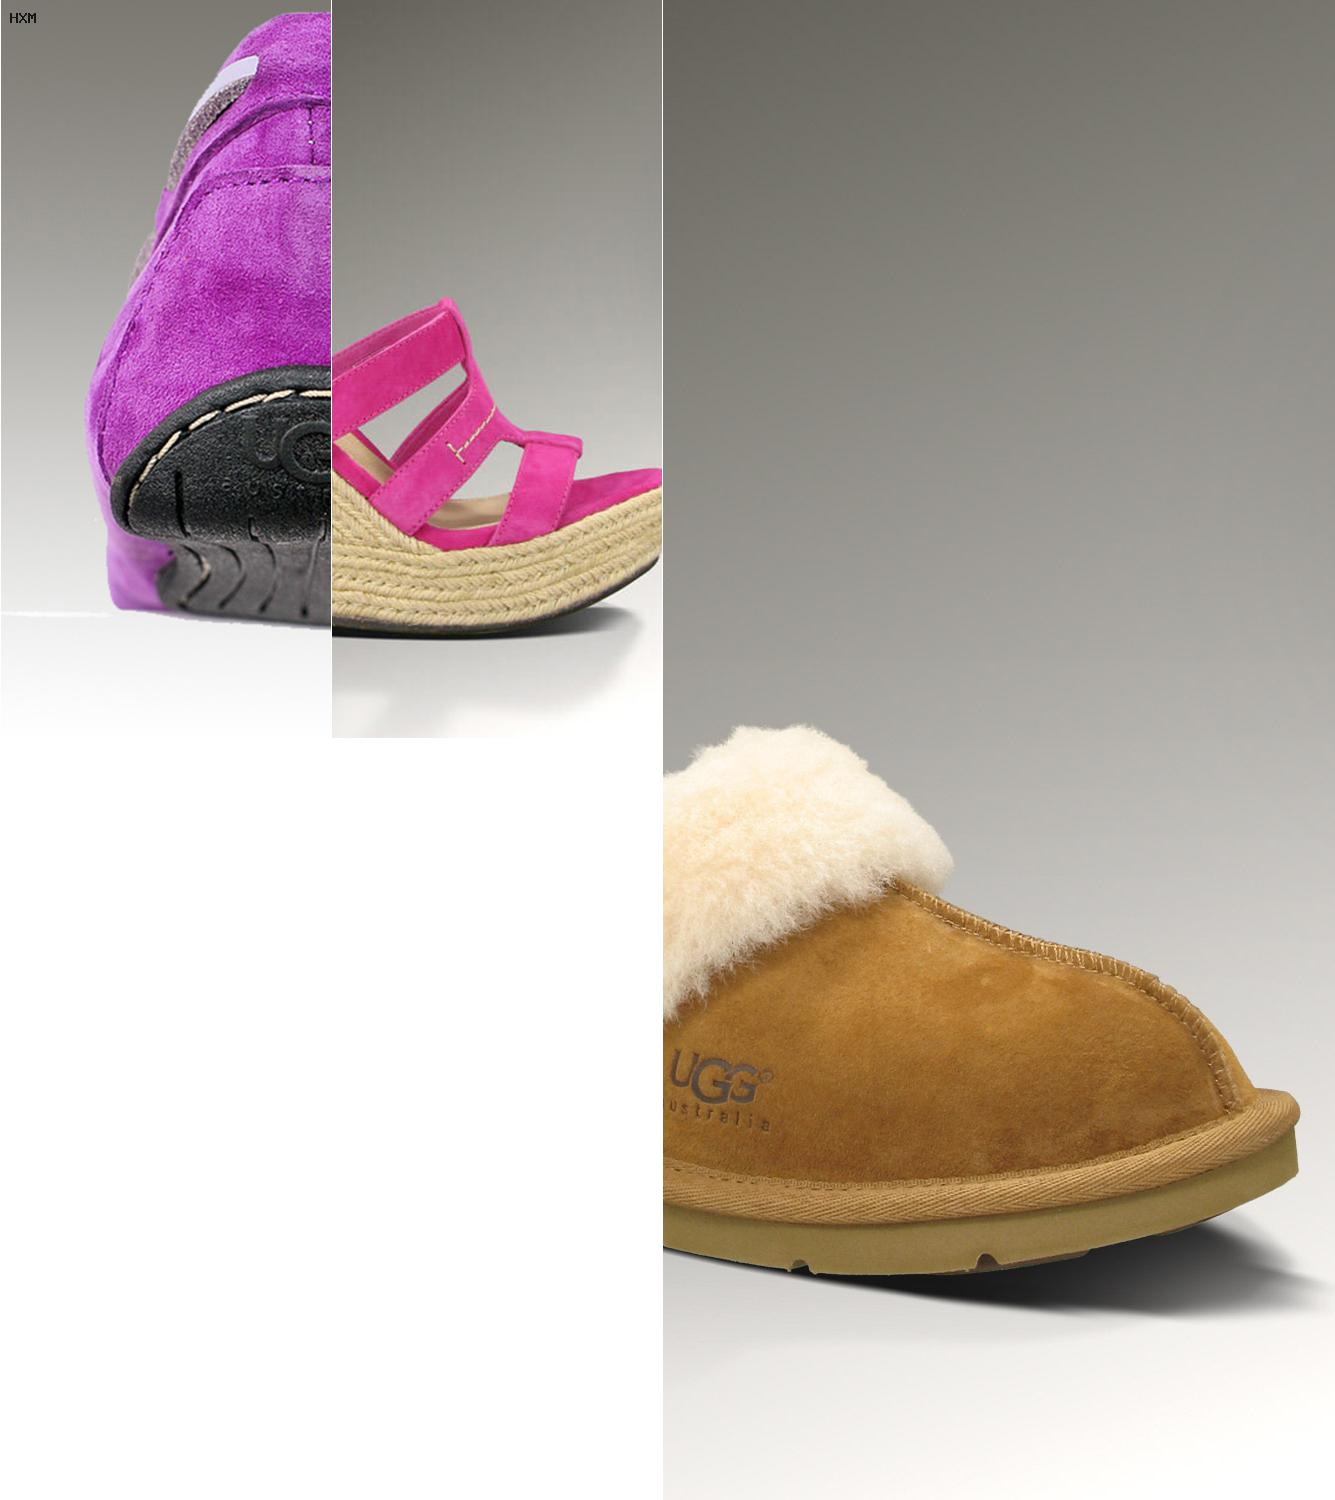 ugg boots prices